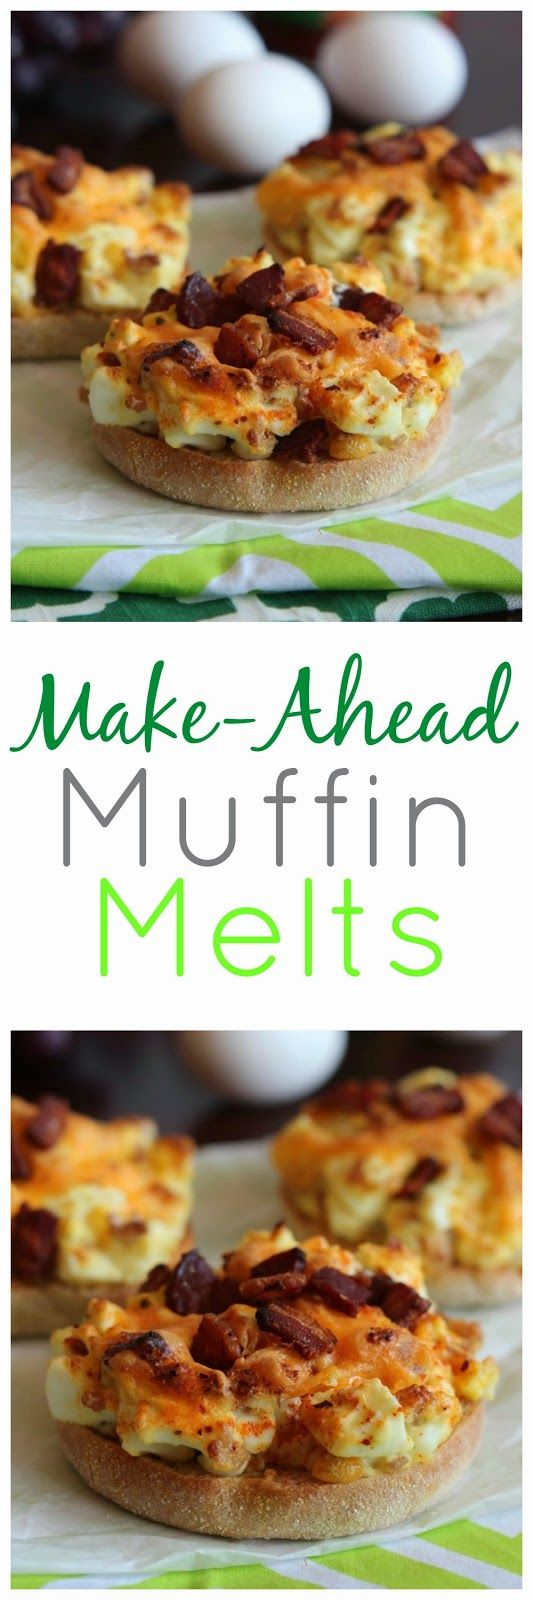 Pioneer Woman's Make-Ahead Muffin Melts - This is the PERFECT recipe ...